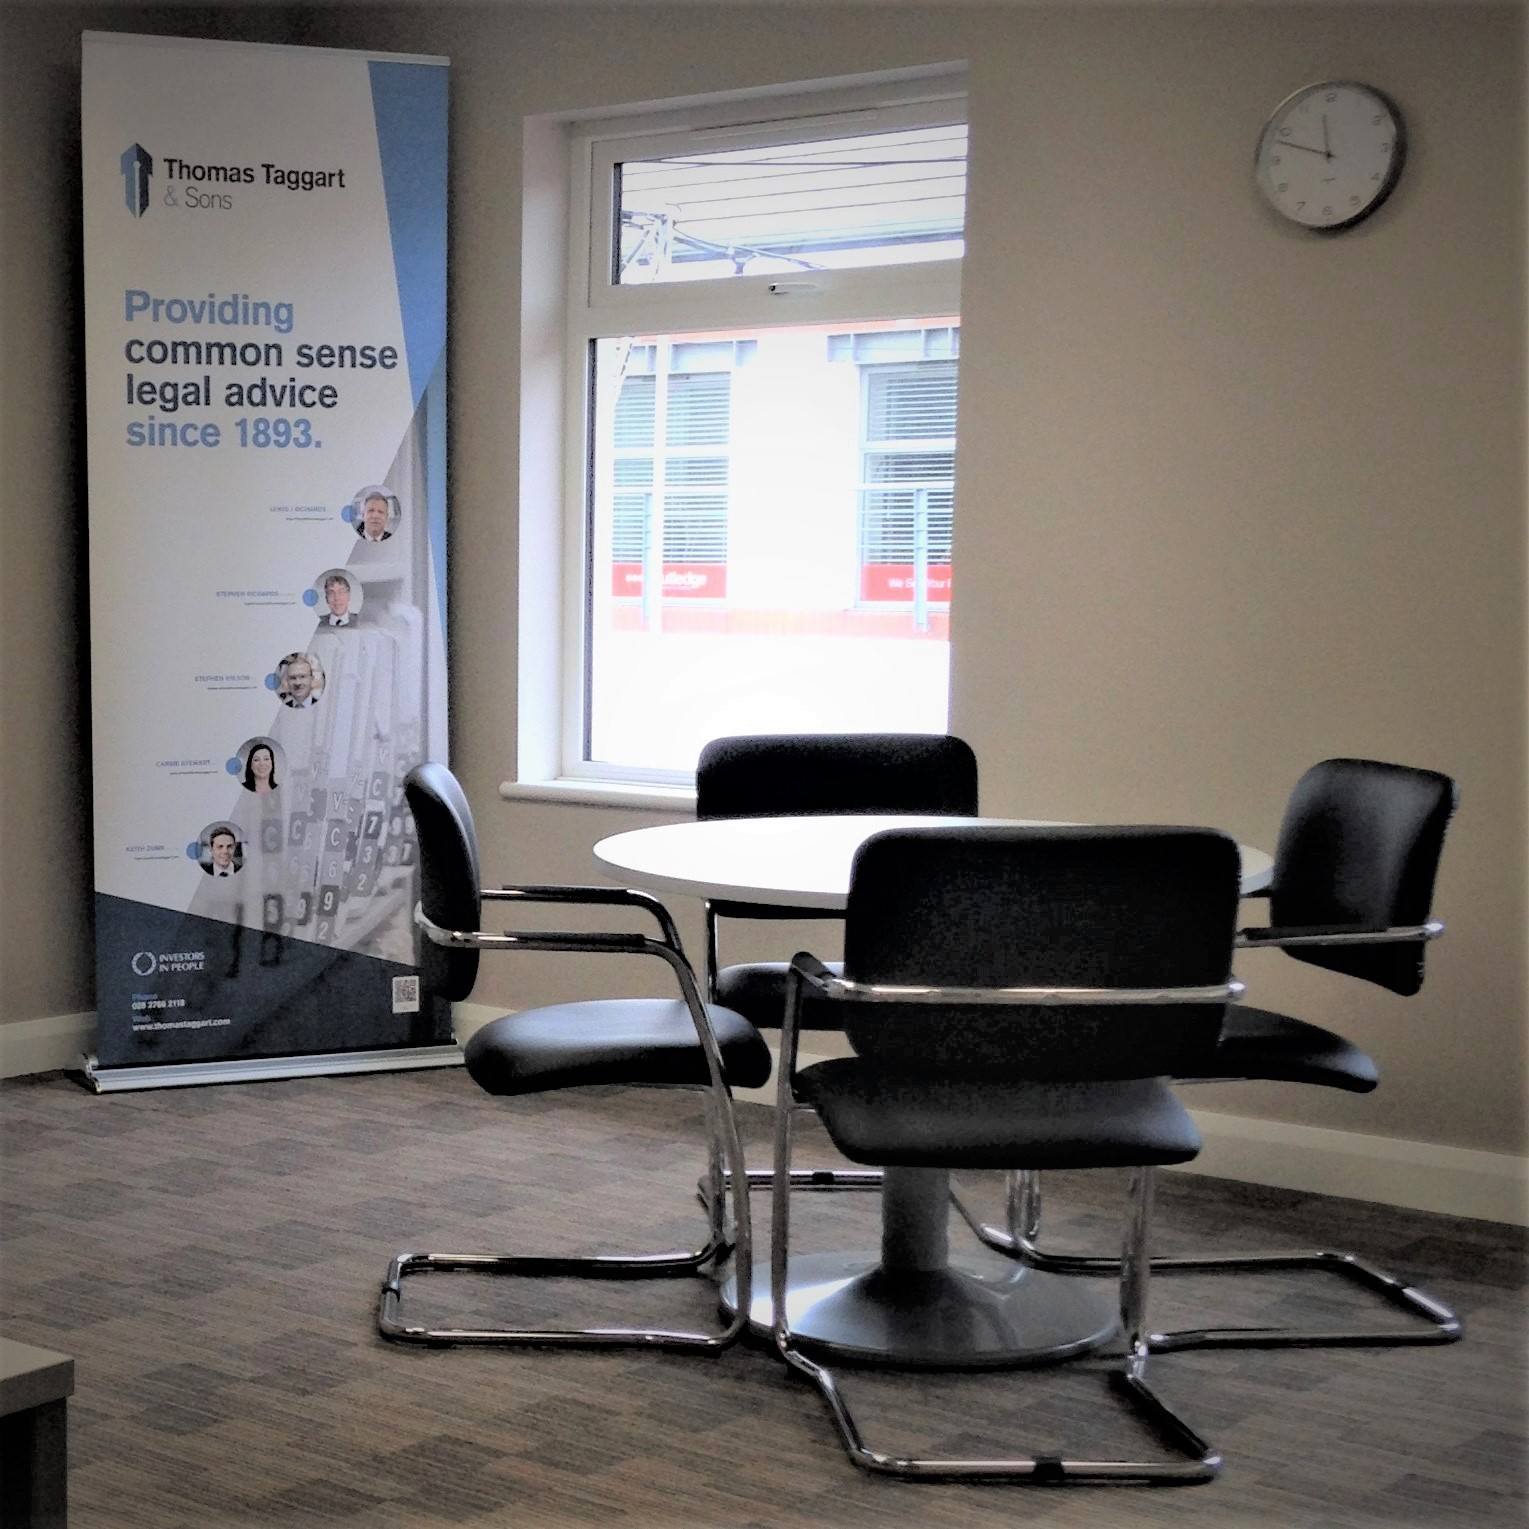 Thomas Taggart & Sons open consulting office in Ballymena